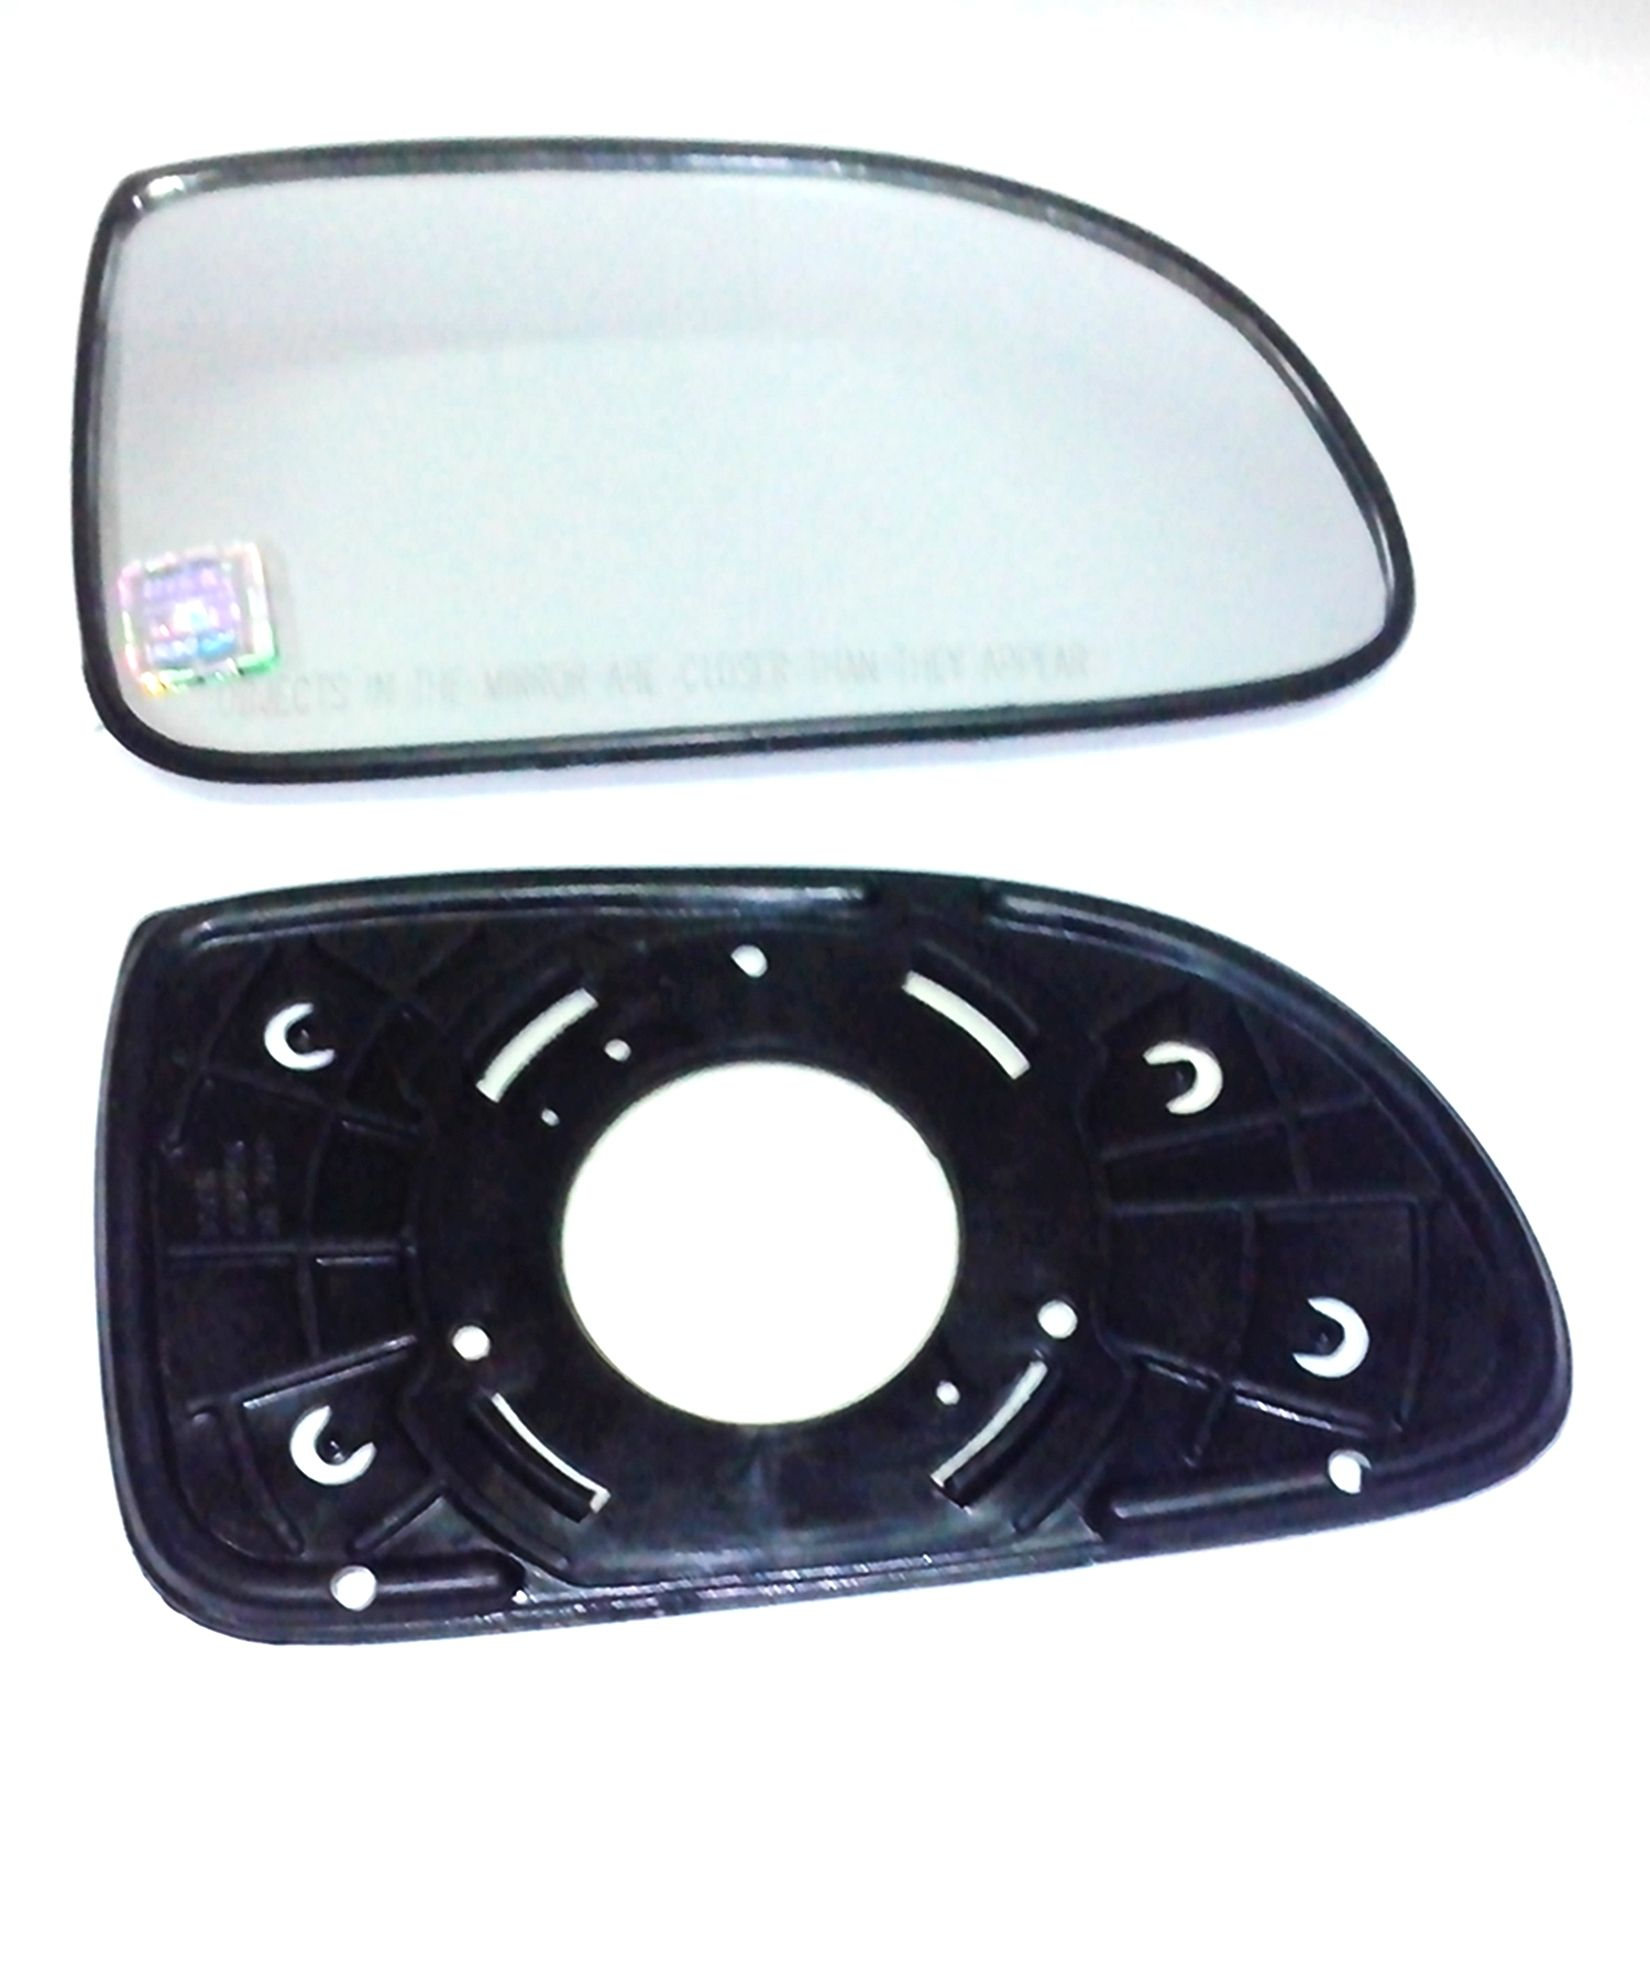 MANTRA-CONVEX MIRROR PLATES (SUB MIRROR PLATES) FOR TOYOTA COROLLA LEFT SIDE